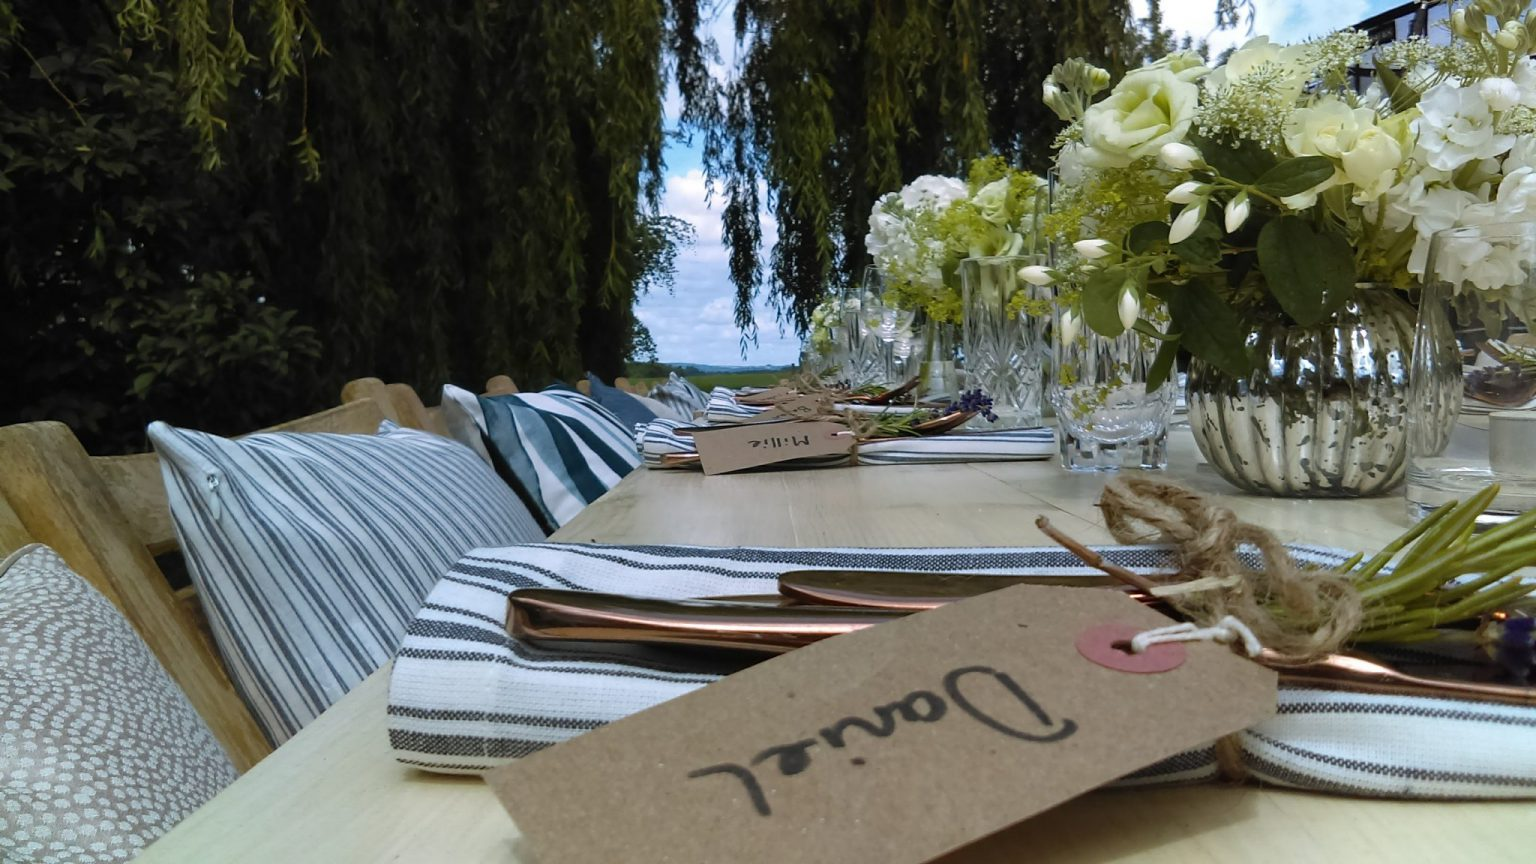 Copper cutlery and striped napkins